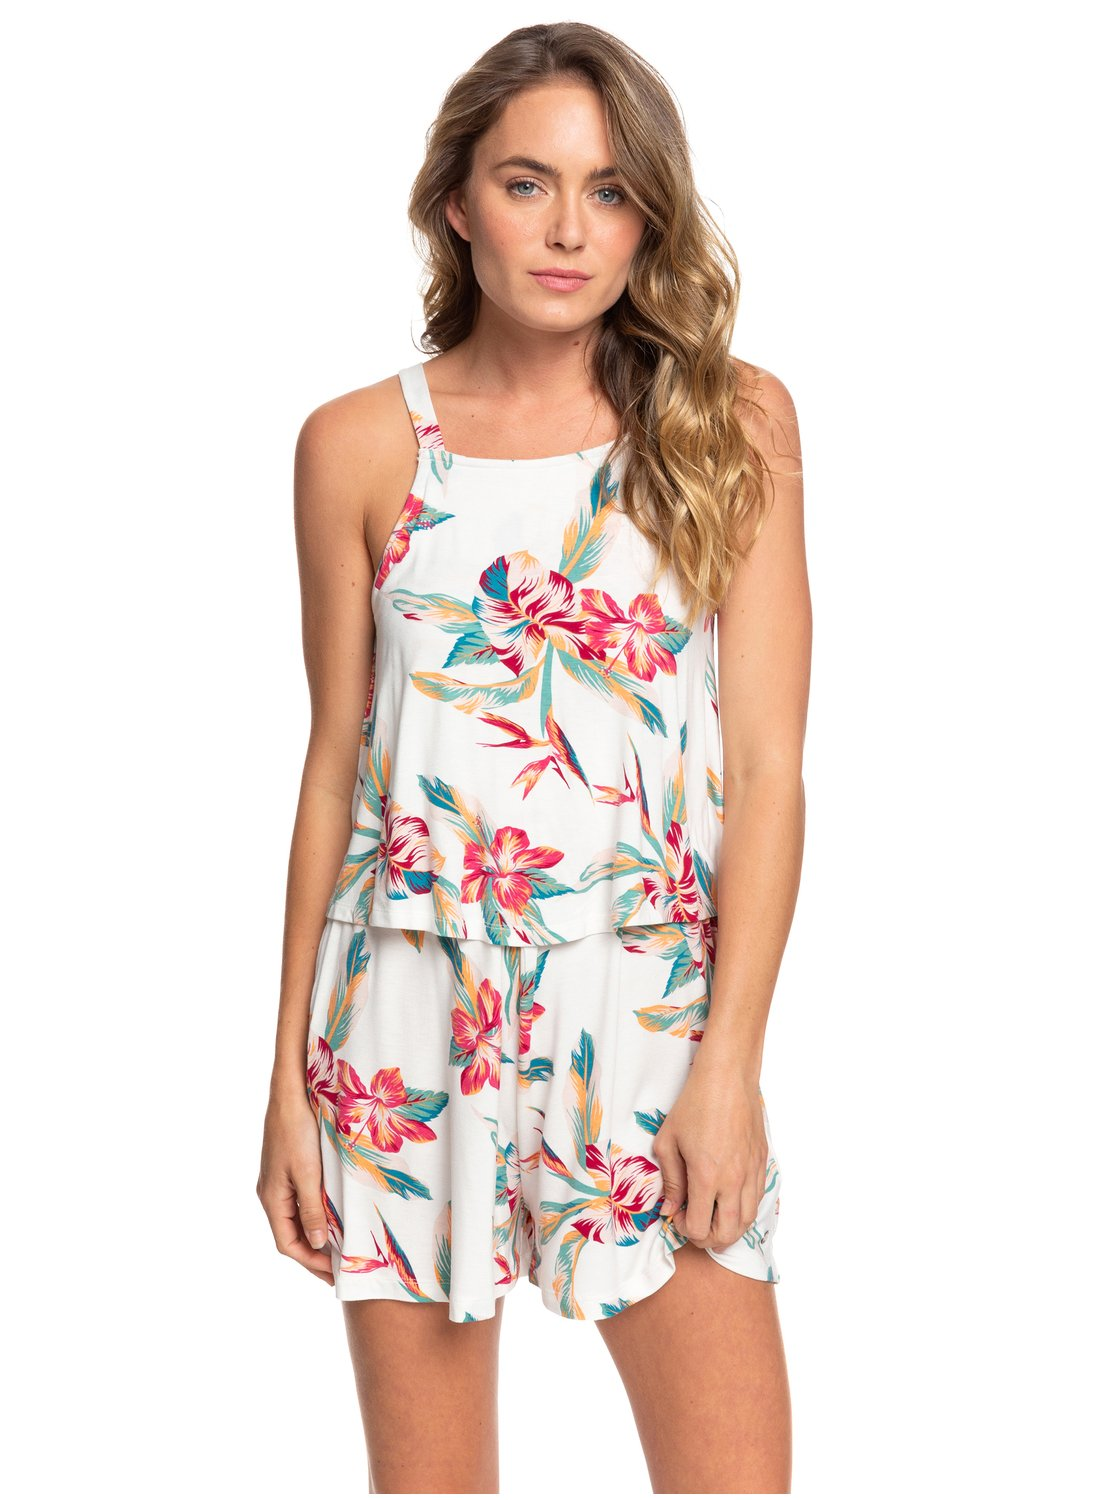 ROXY - LADIES FAVORITE SONG STRAPPY ROMPER